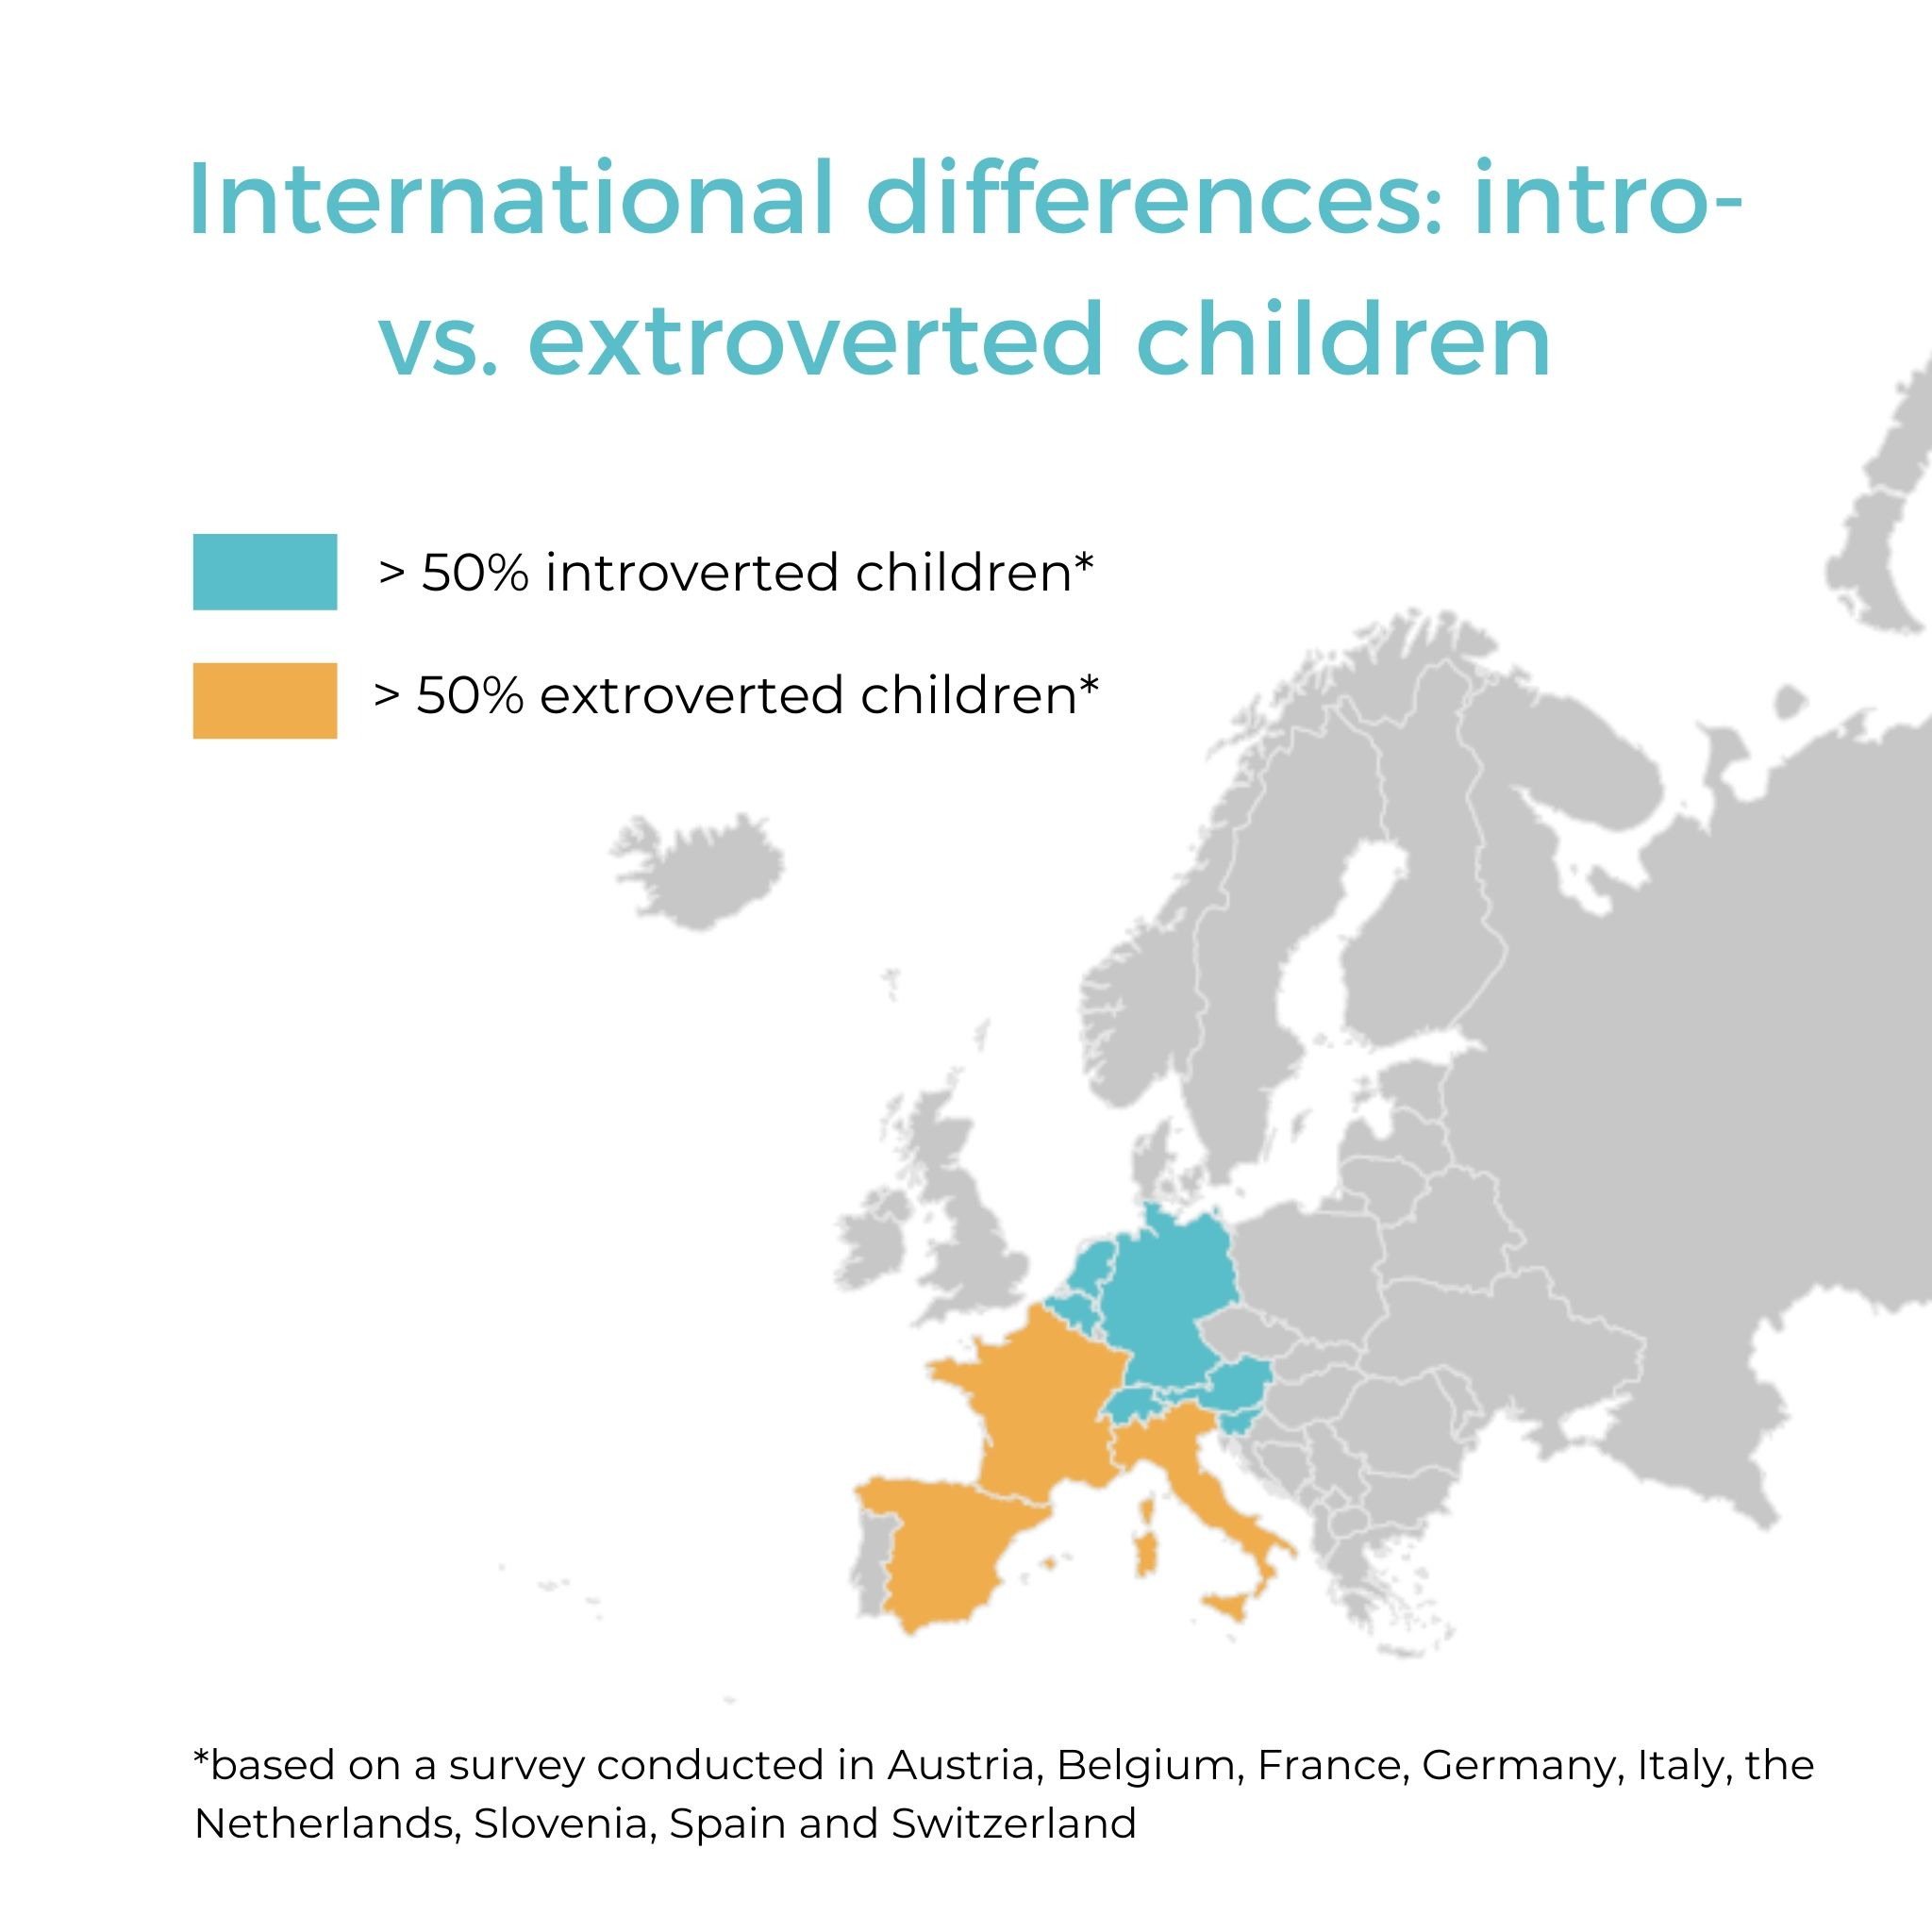 Introverted and extroverted children in Europe